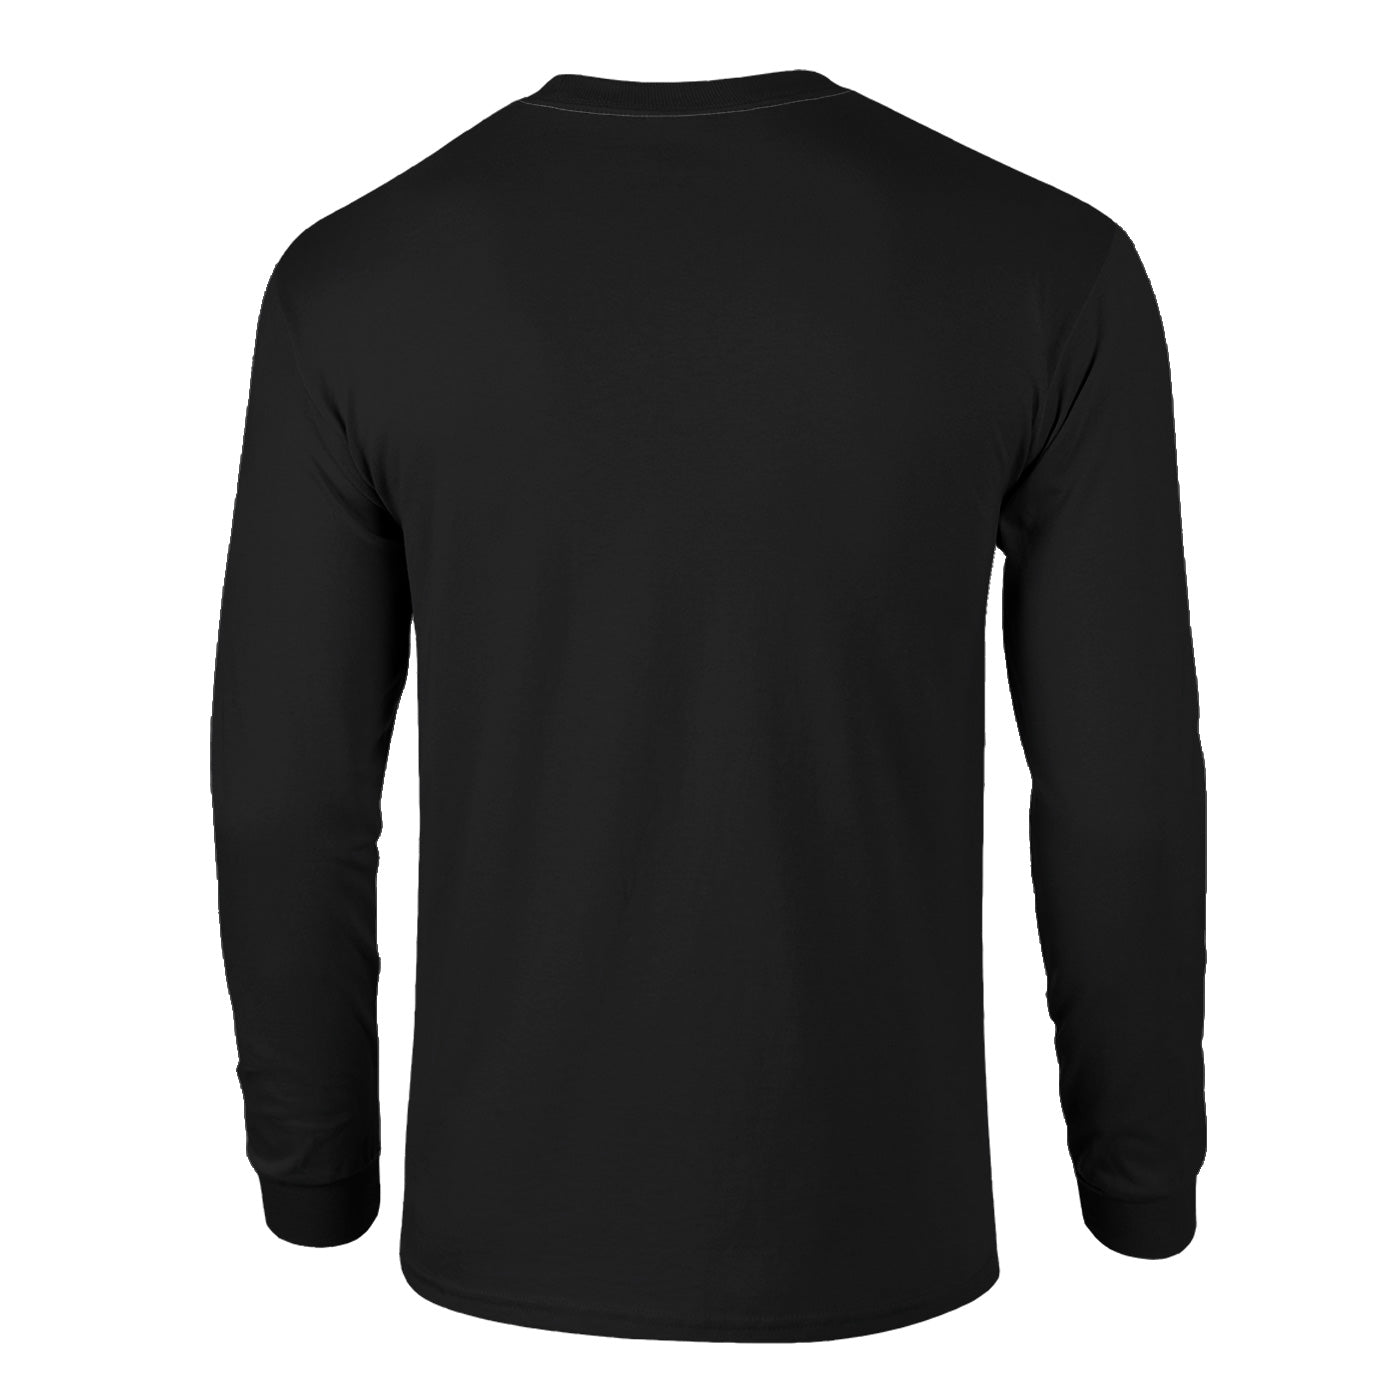 Protect Yourself Long Sleeve Shirt